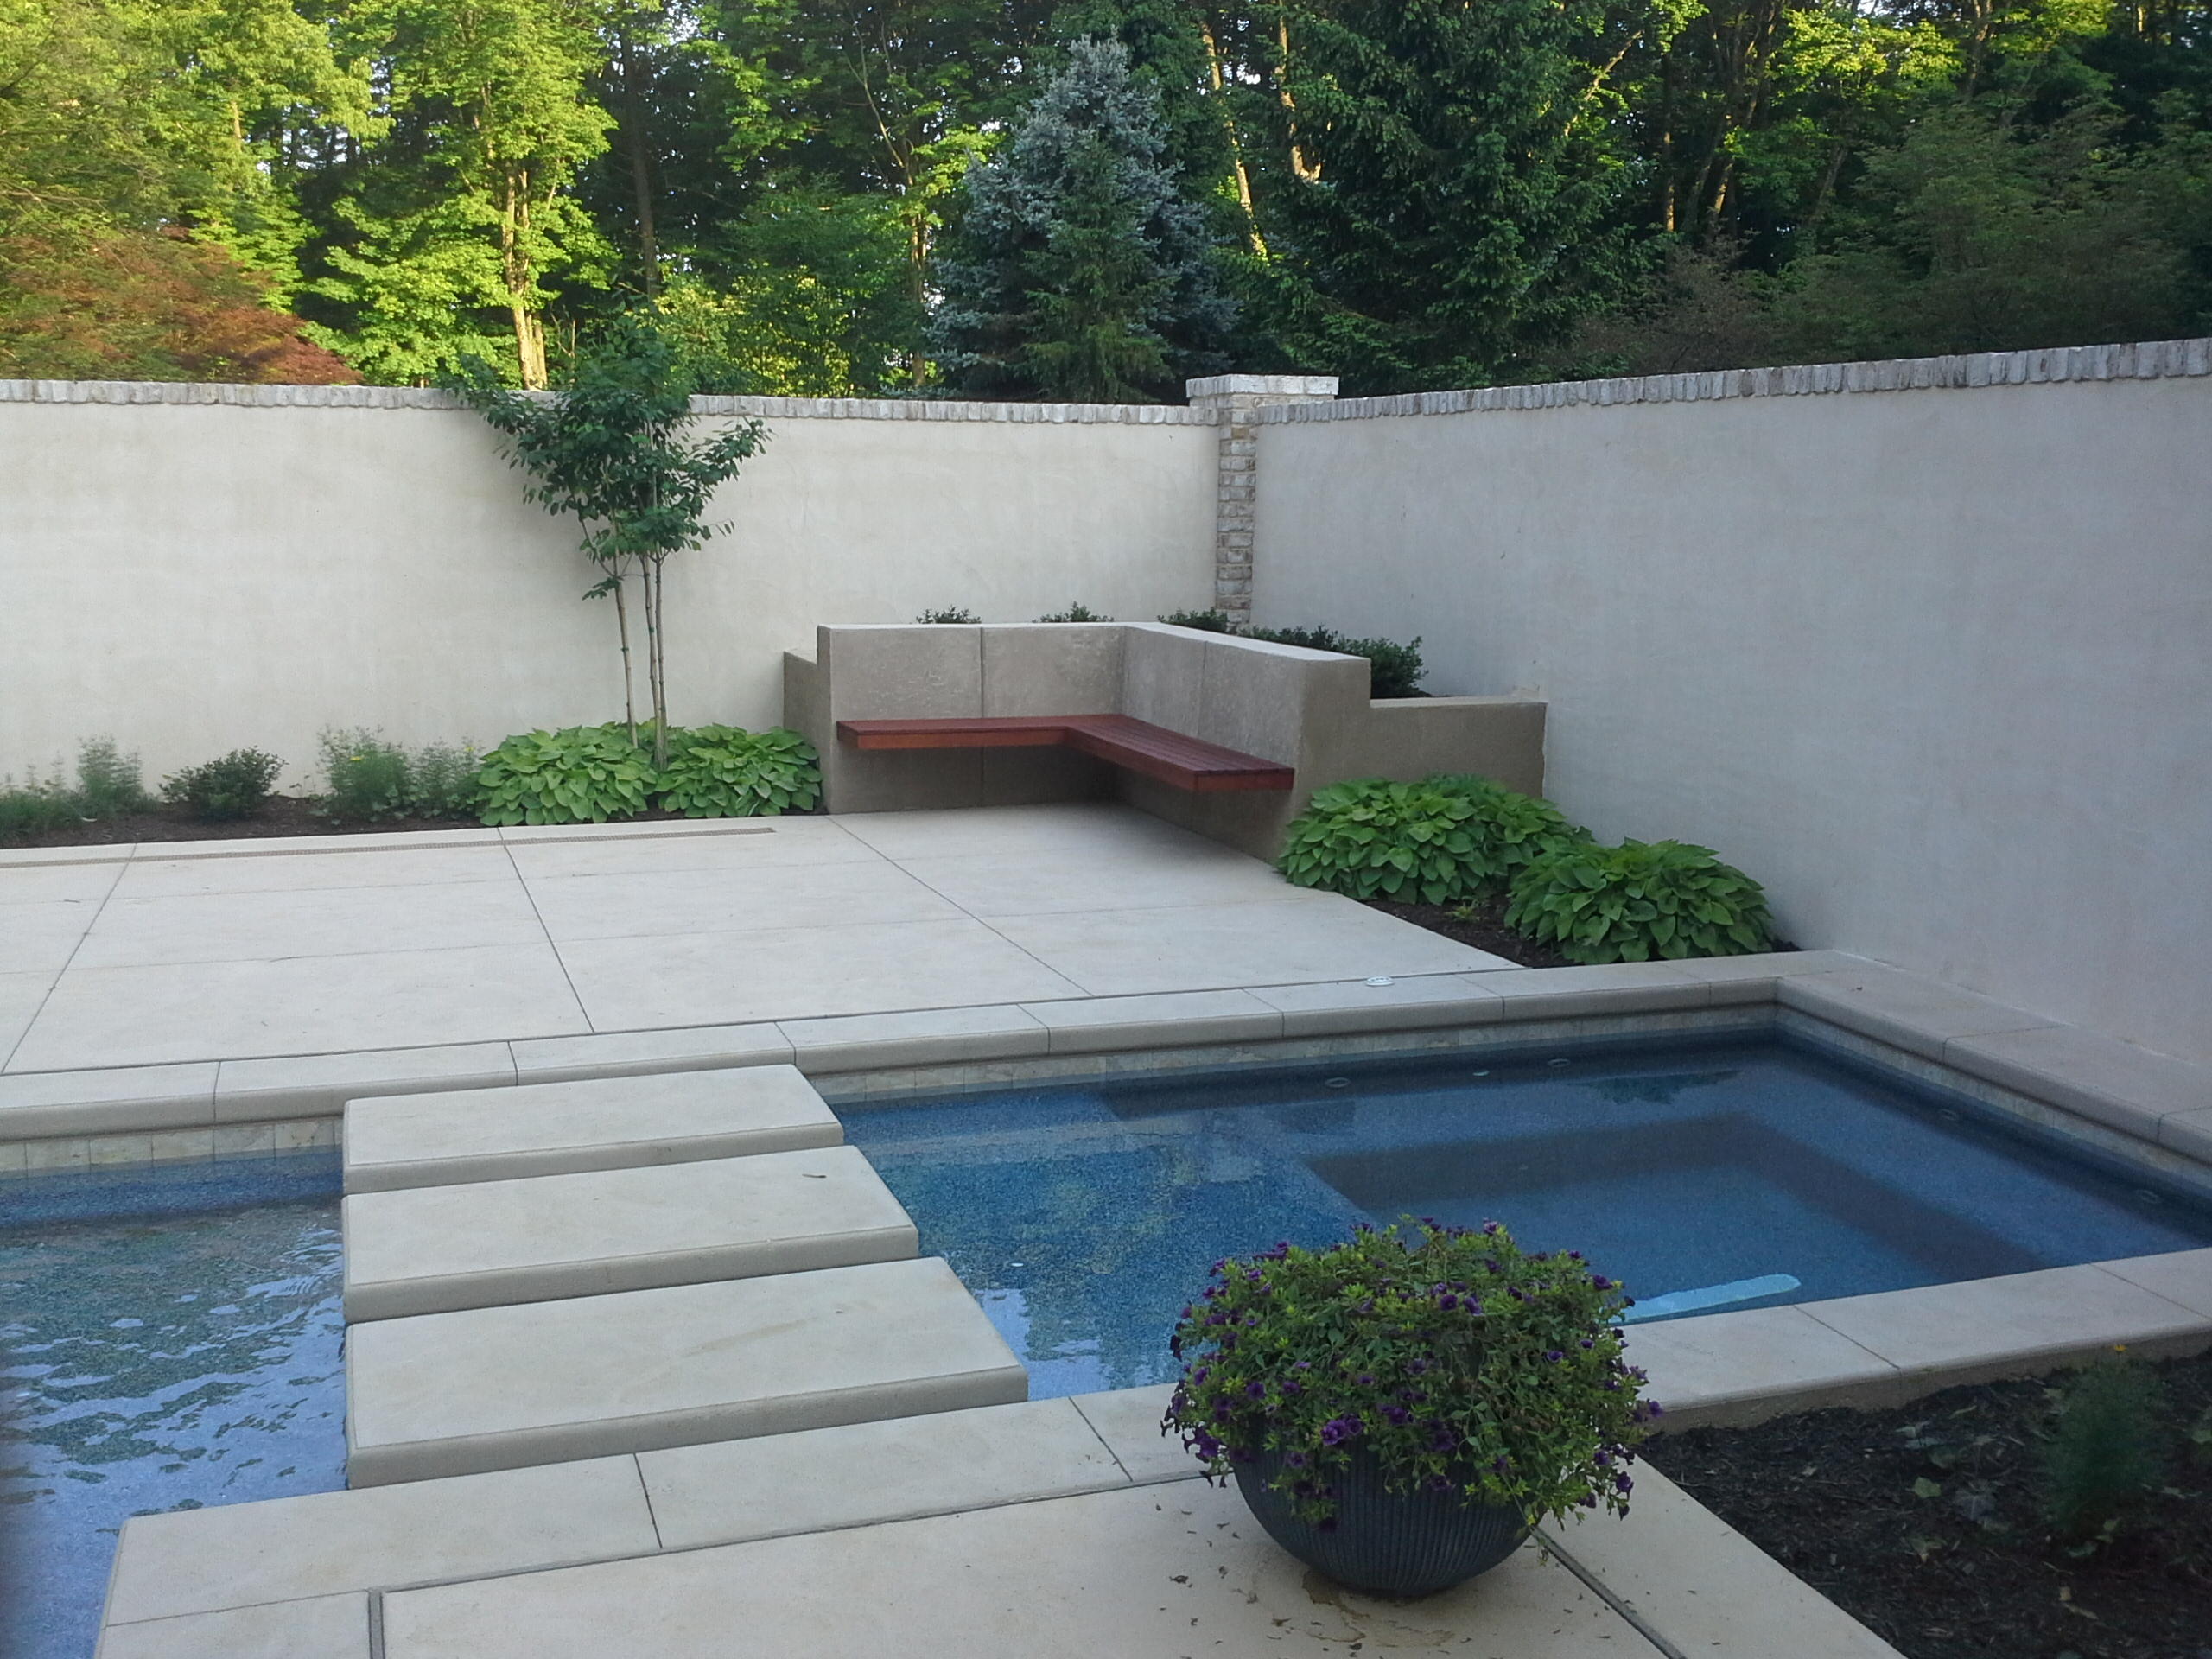 Hot tub can flow like a stream through steps to warm pool, or operate independently, Lancaster, PA